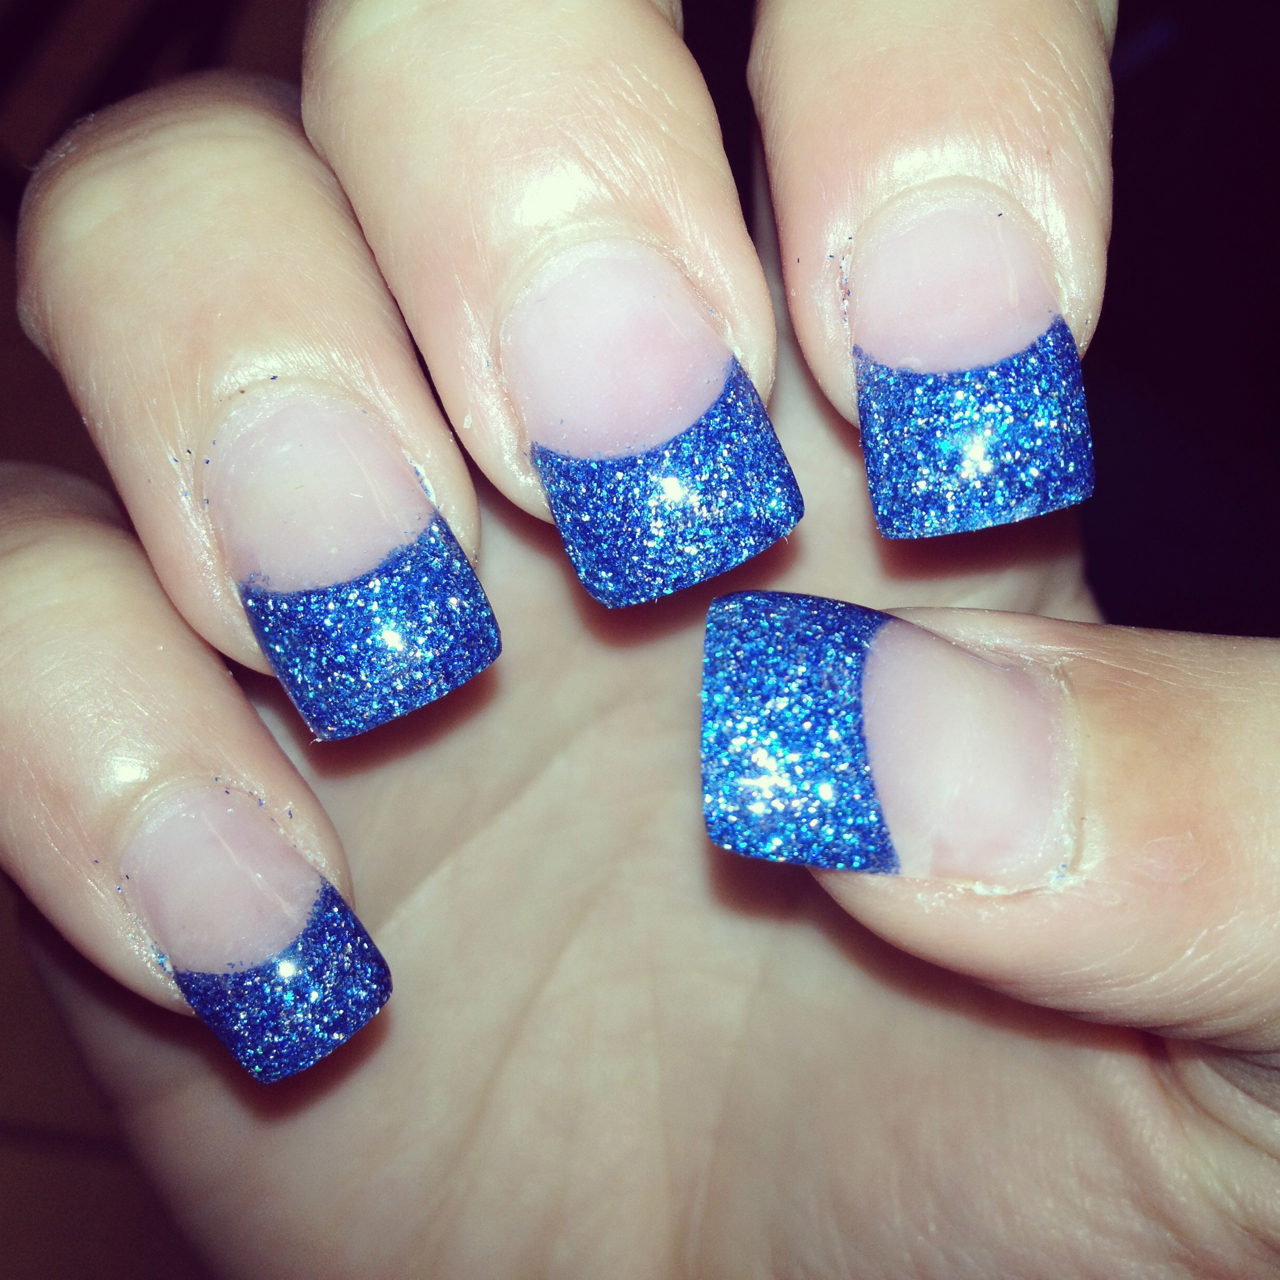 Royal Blue Nail Designs For Prom 2018 Images Pictures 32 Blue